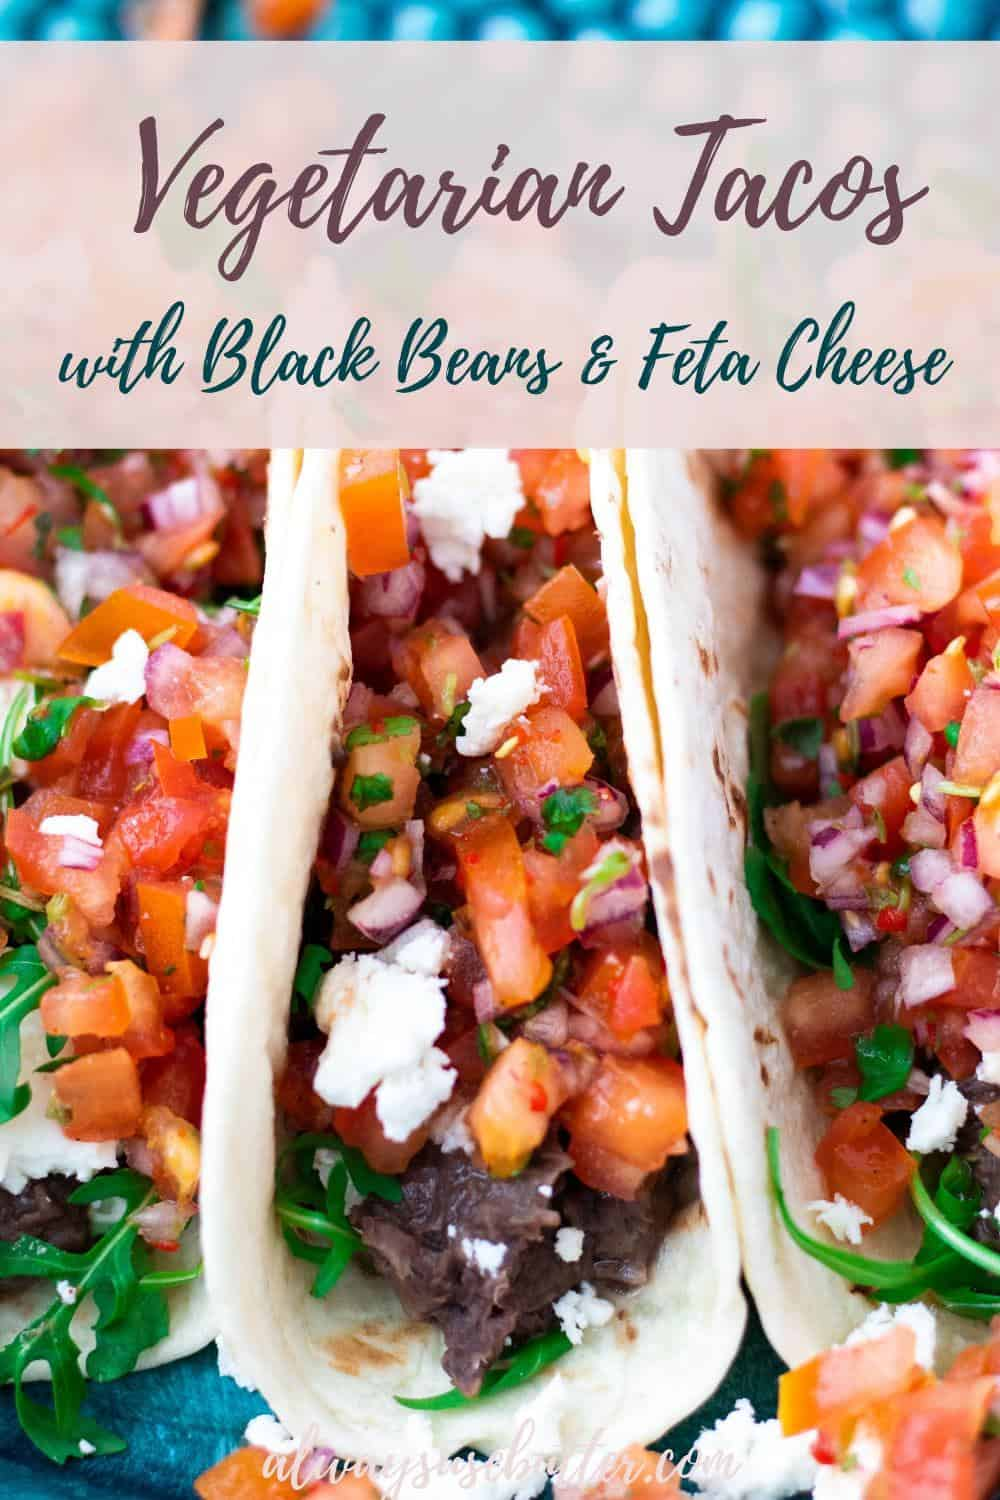 Vegetarian Tacos with black beans, feta cheese & pico de gallo are a quick and easy vegetarian taco recipe that's sure to have you coming back for more! #alwaysusebutter #vegetariantacos